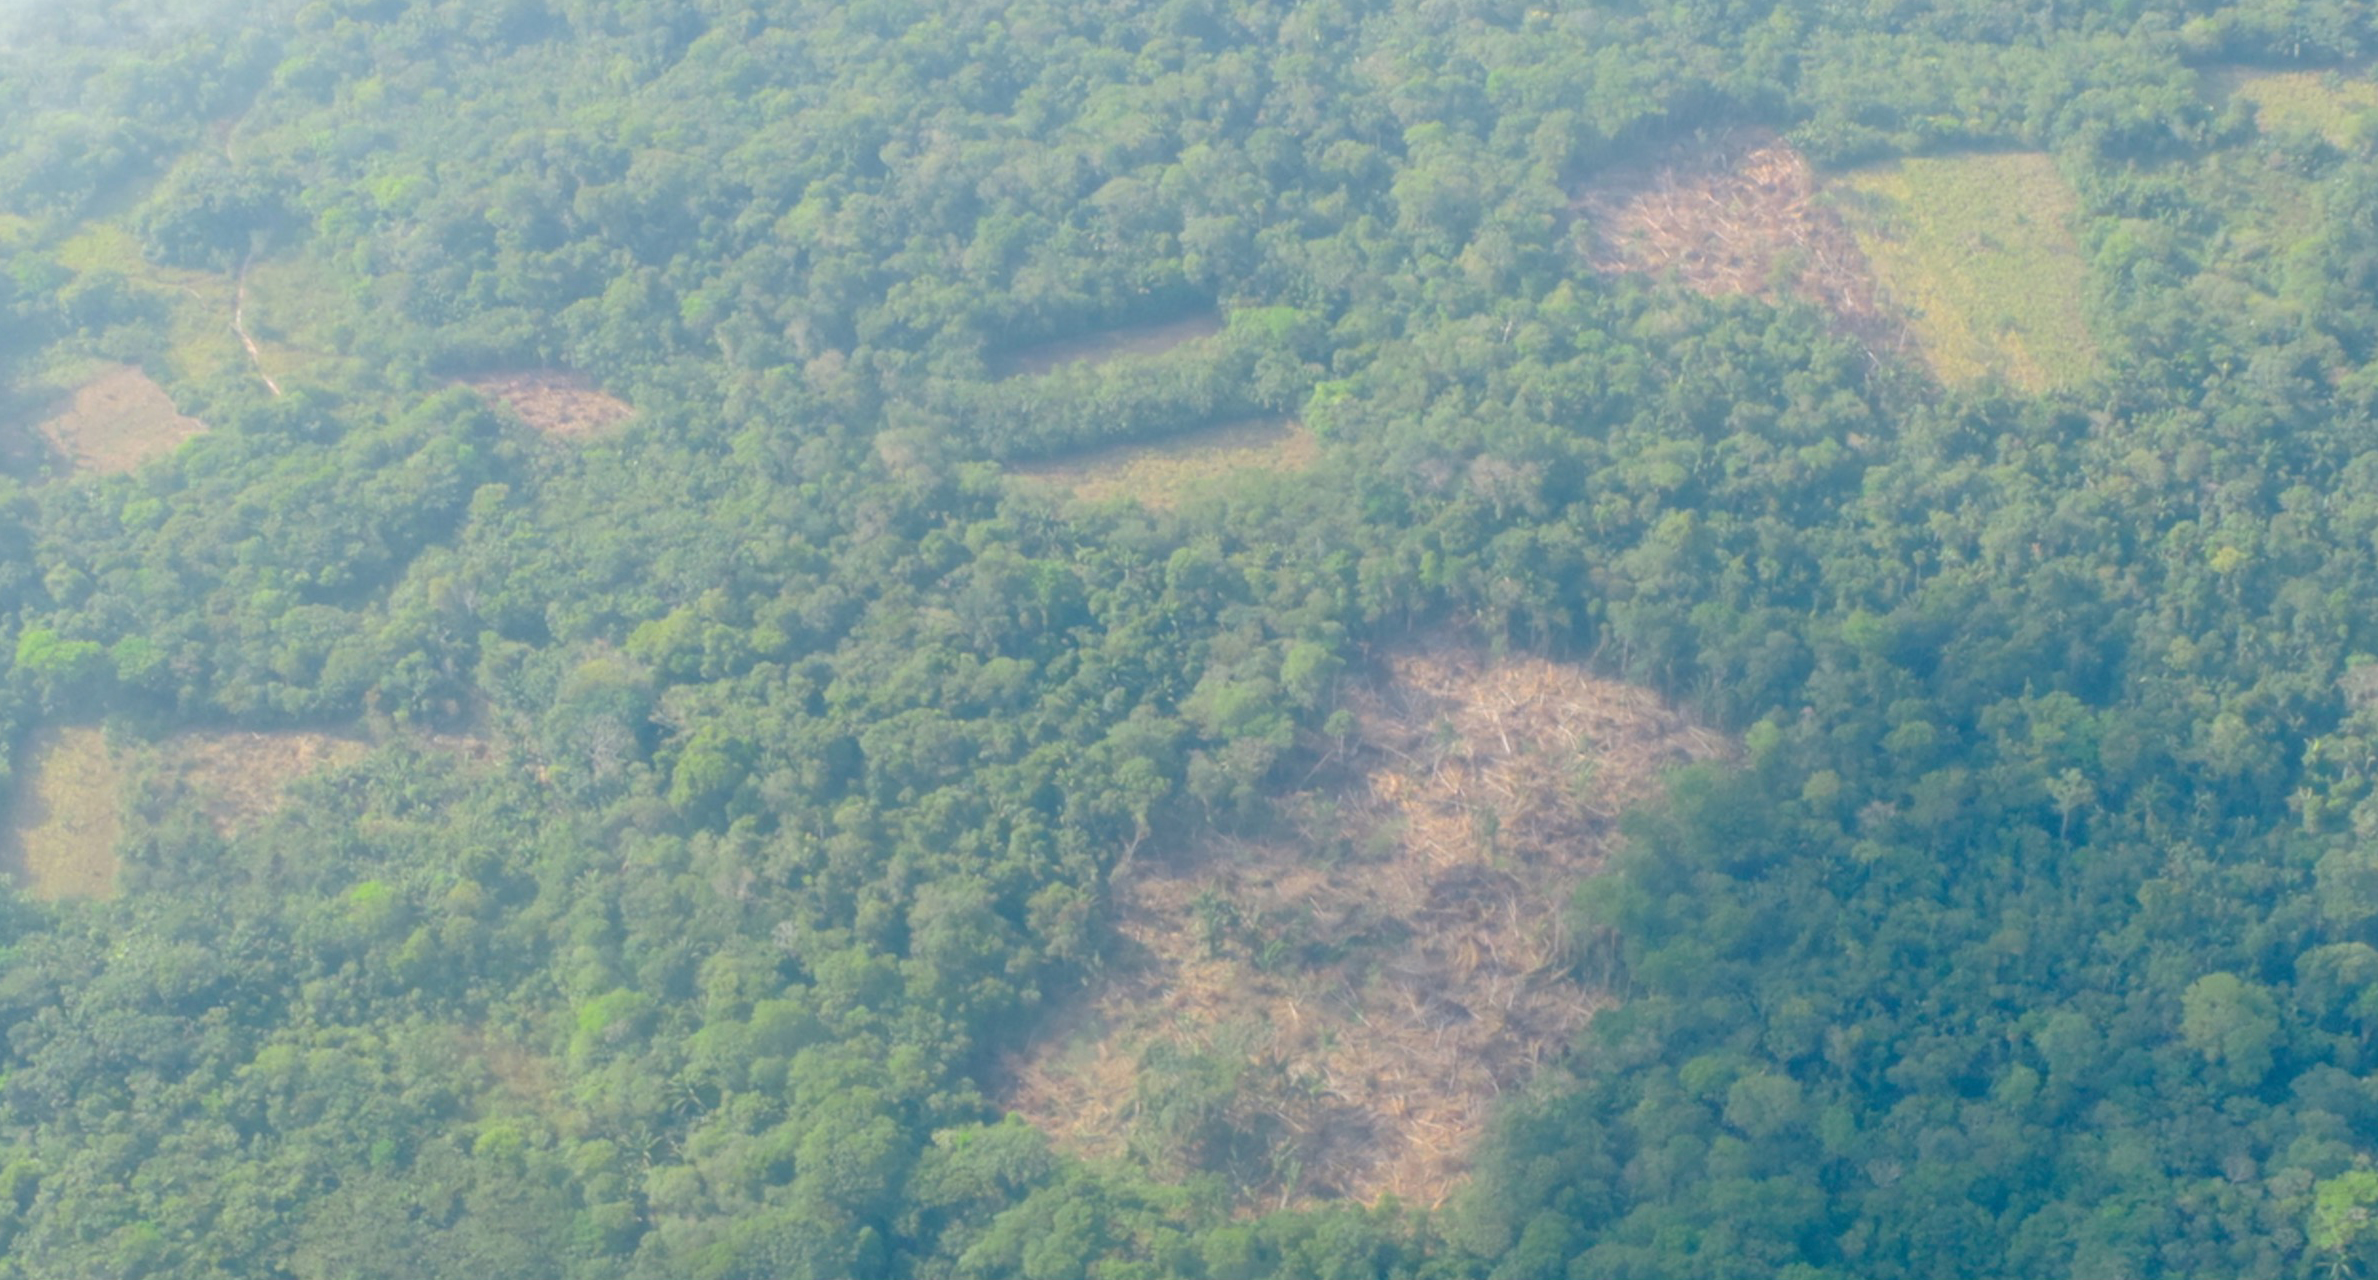 deforestation-in-colombia-nukak-natural-national-park